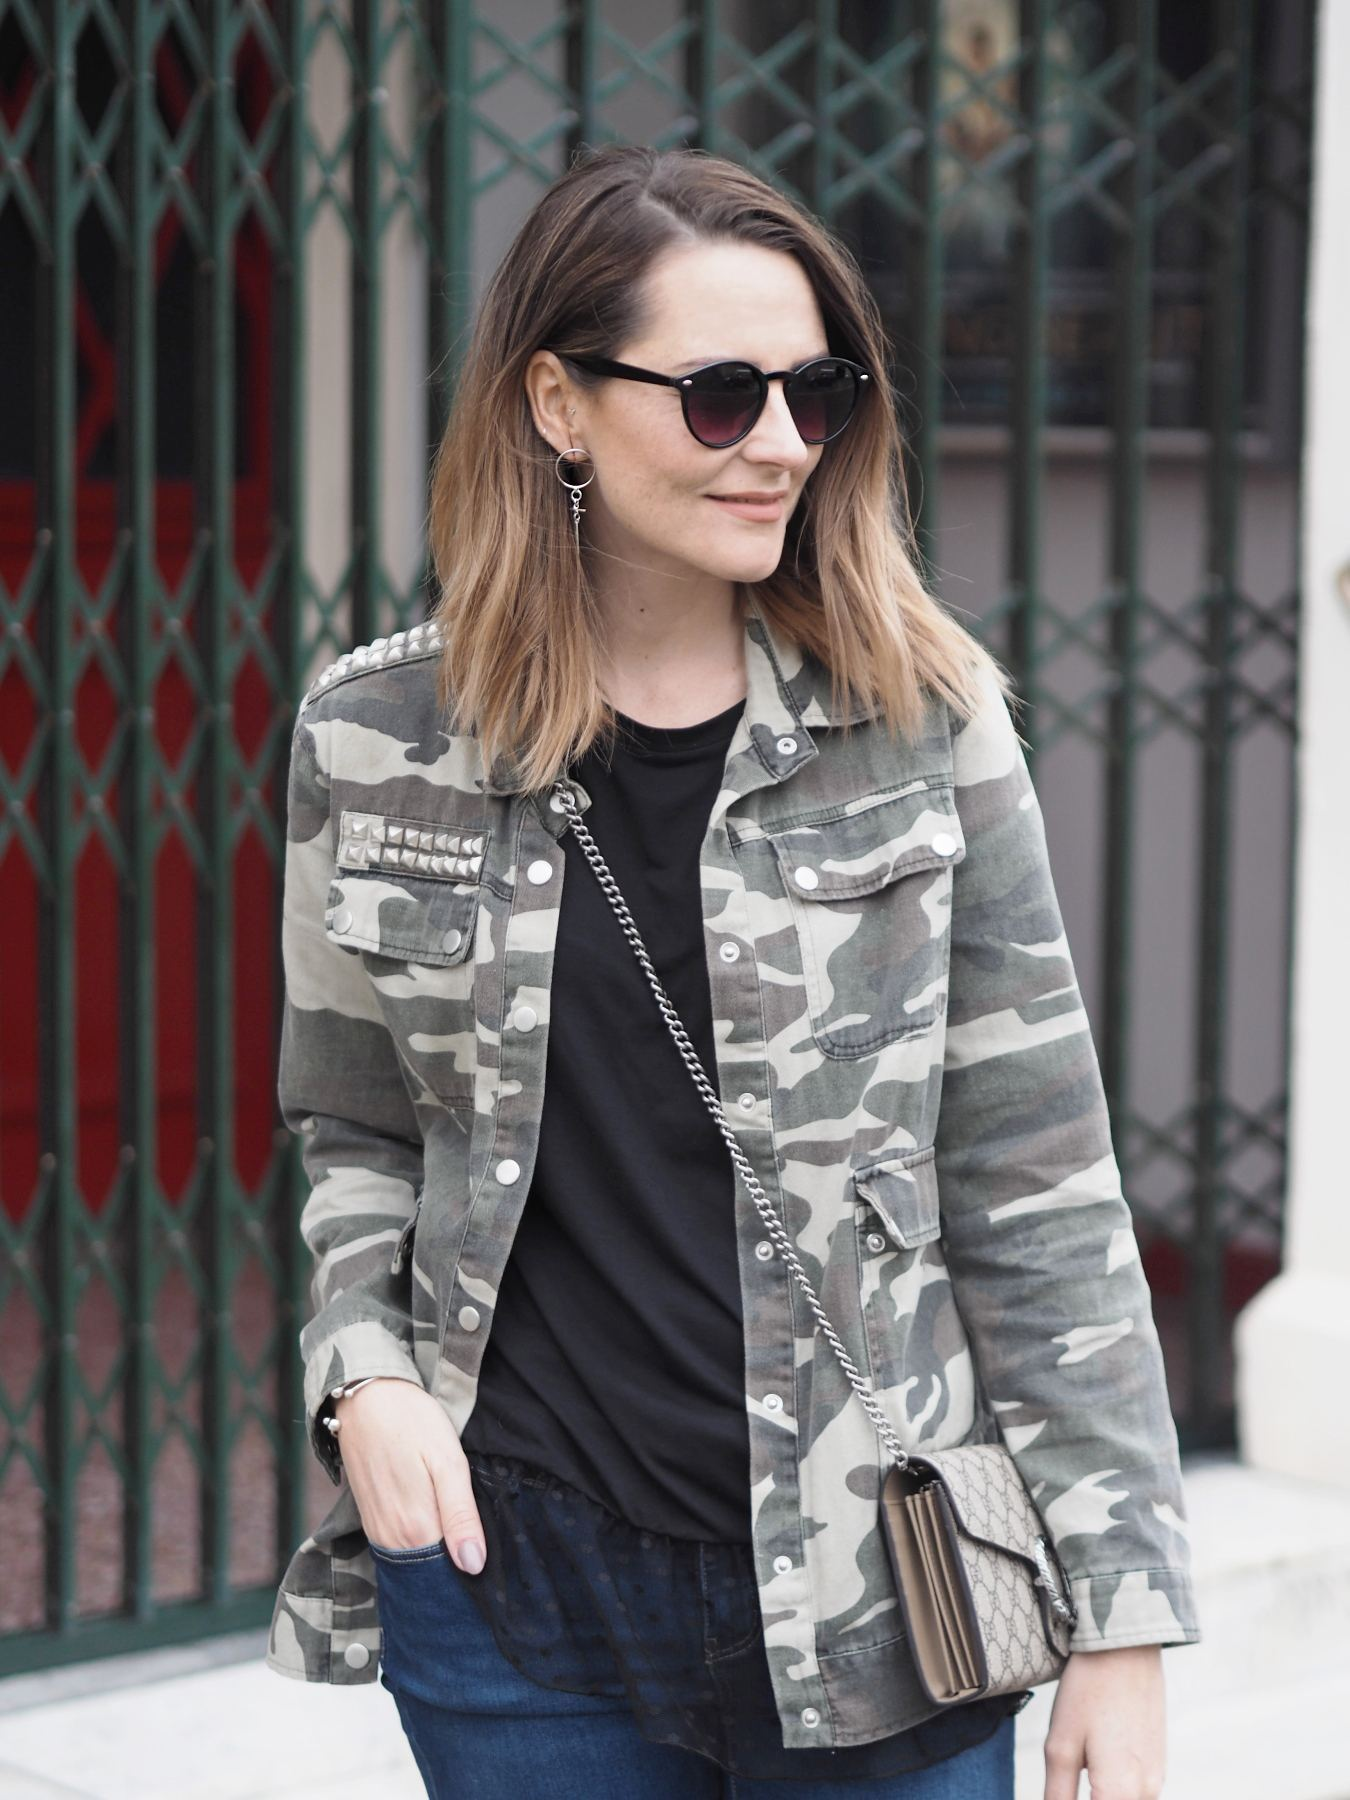 camouflage jackets outfit with jeans outfit